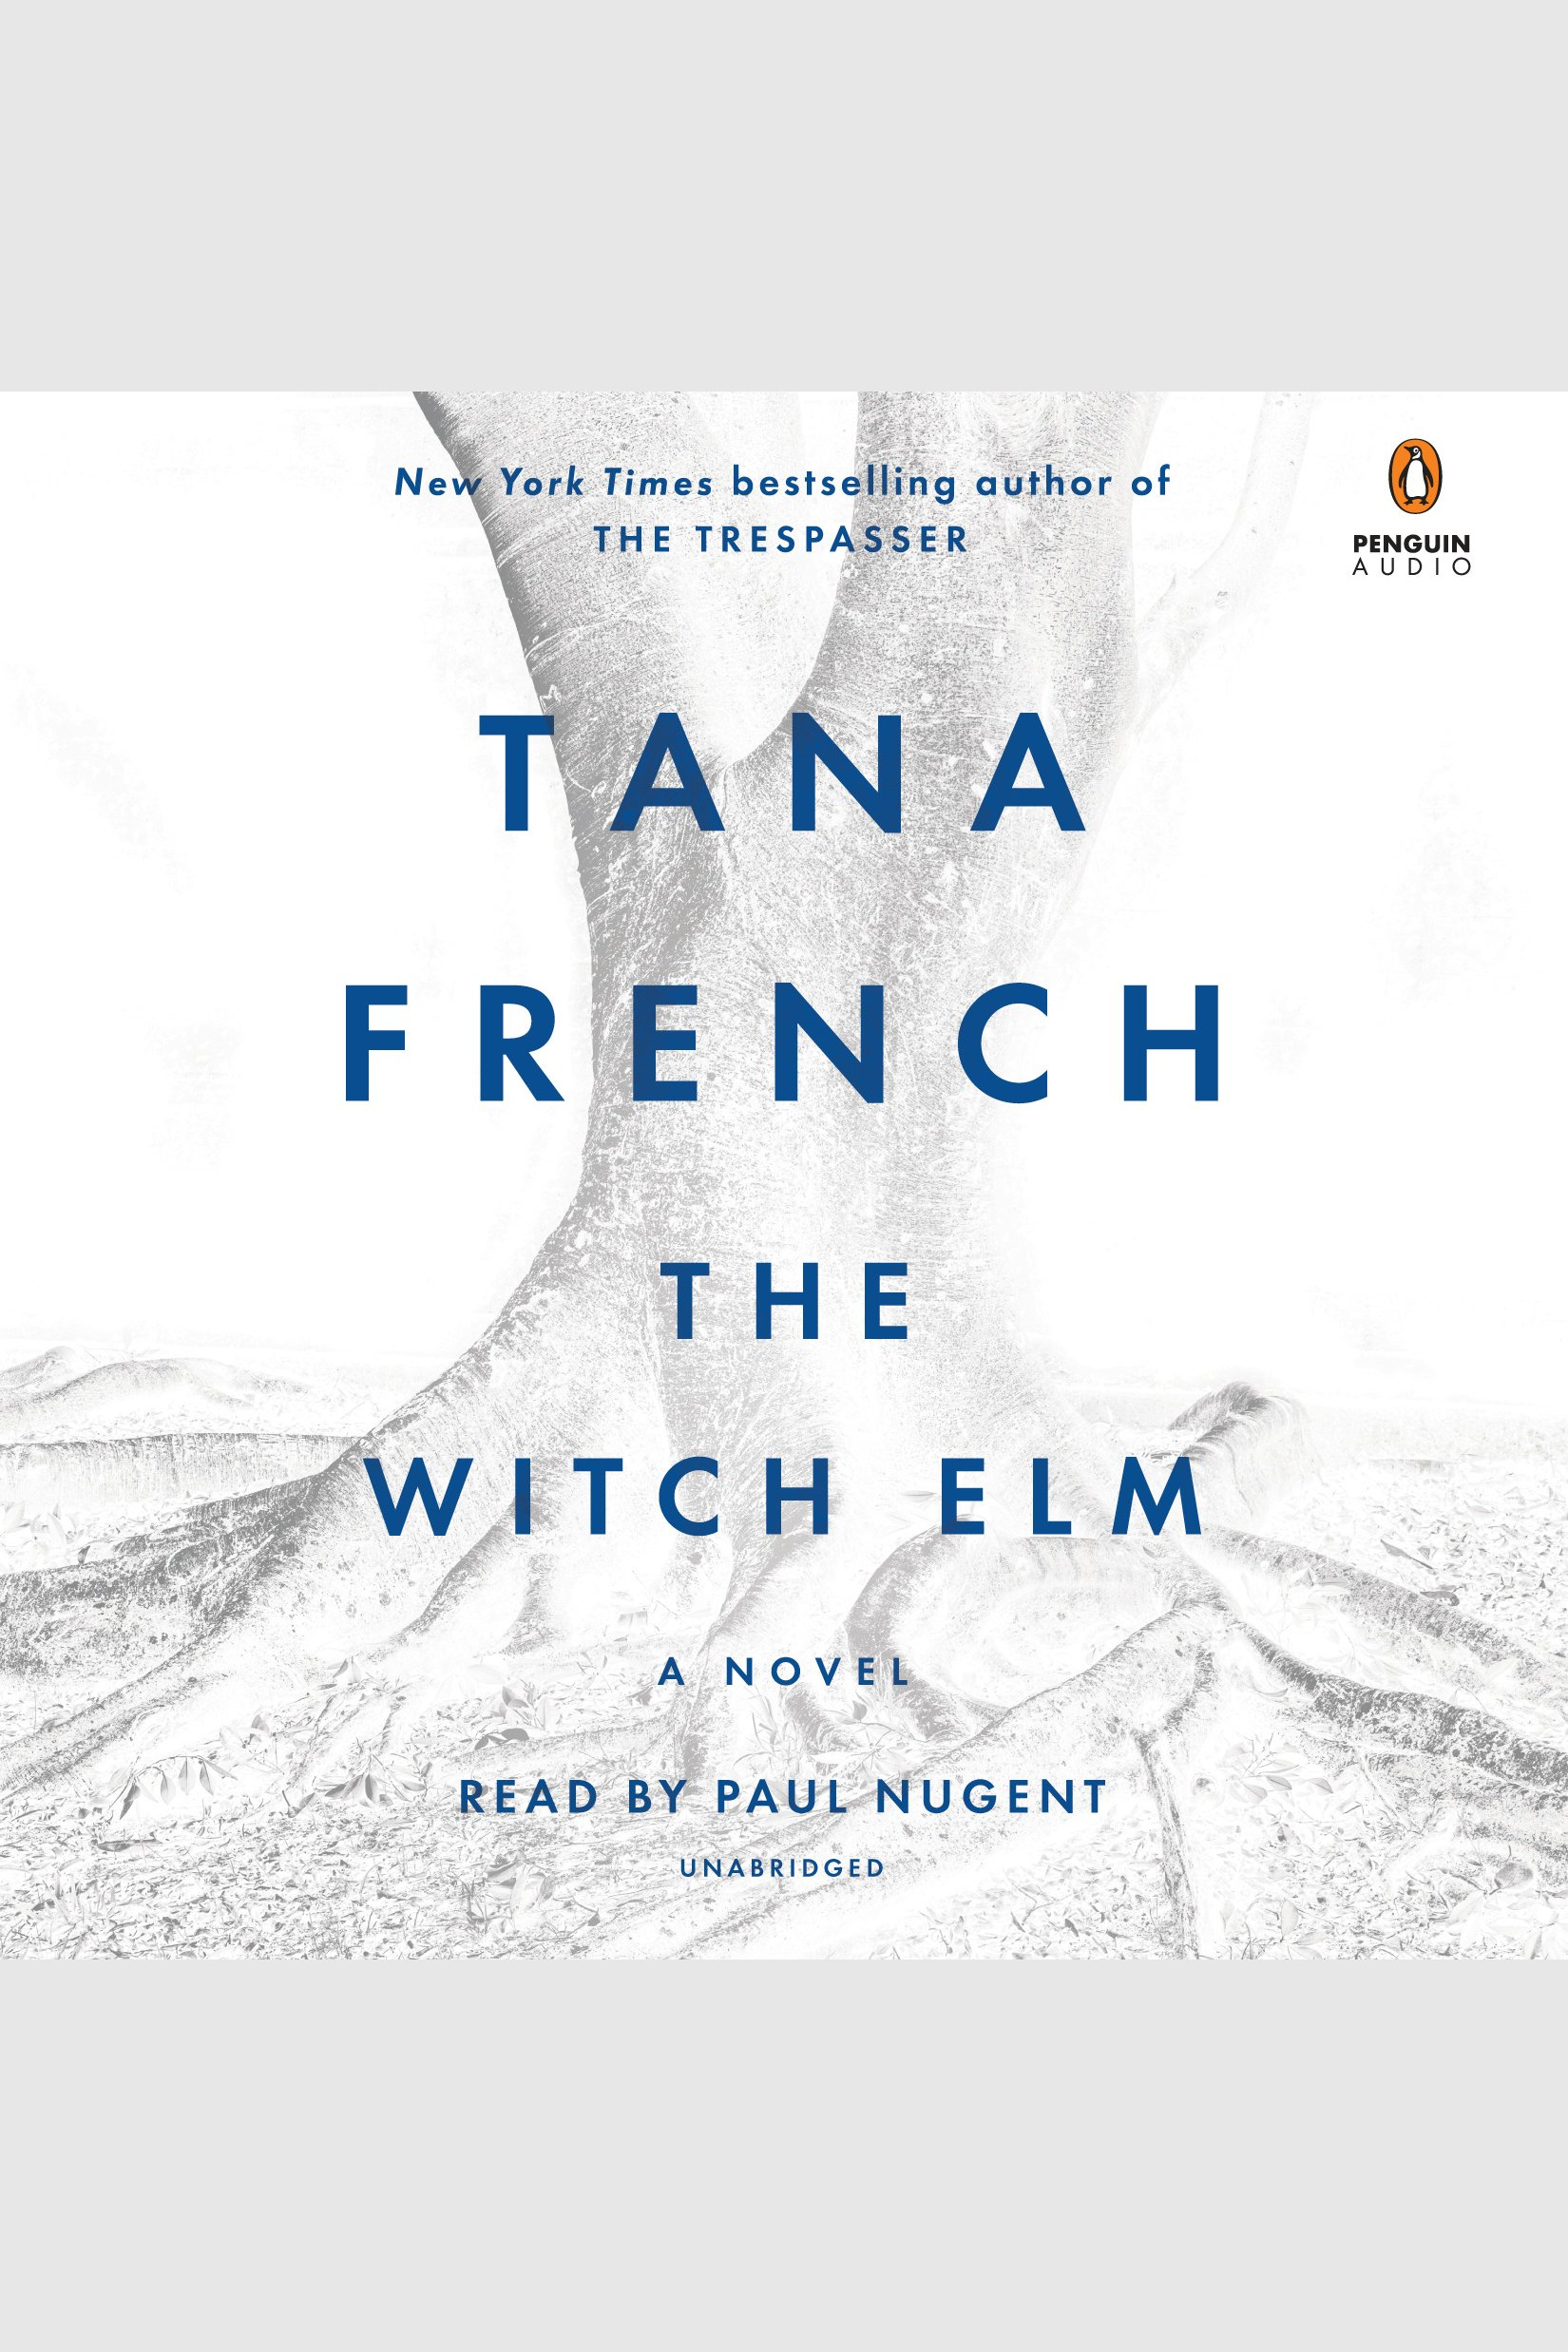 The Witch Elm A Novel